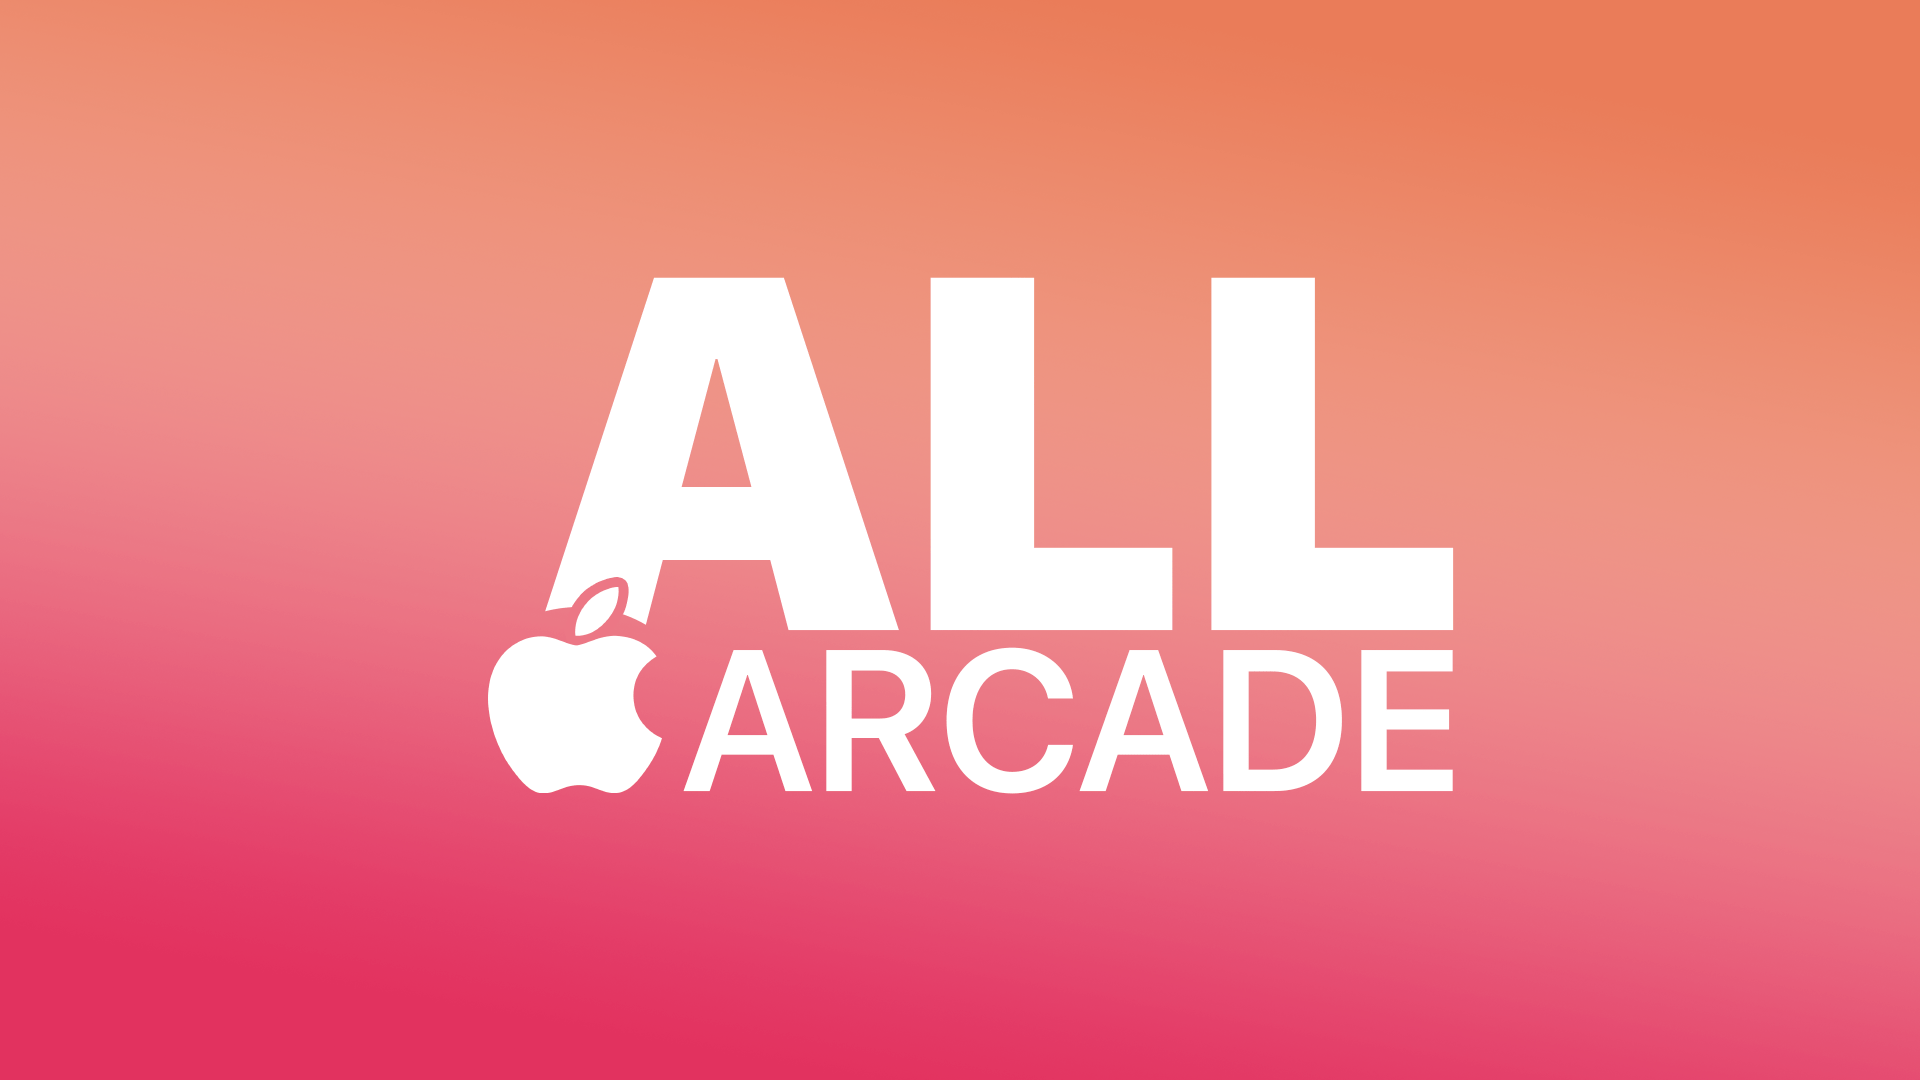 A Year of Apple Arcade: The Good, The Bad, and The Future